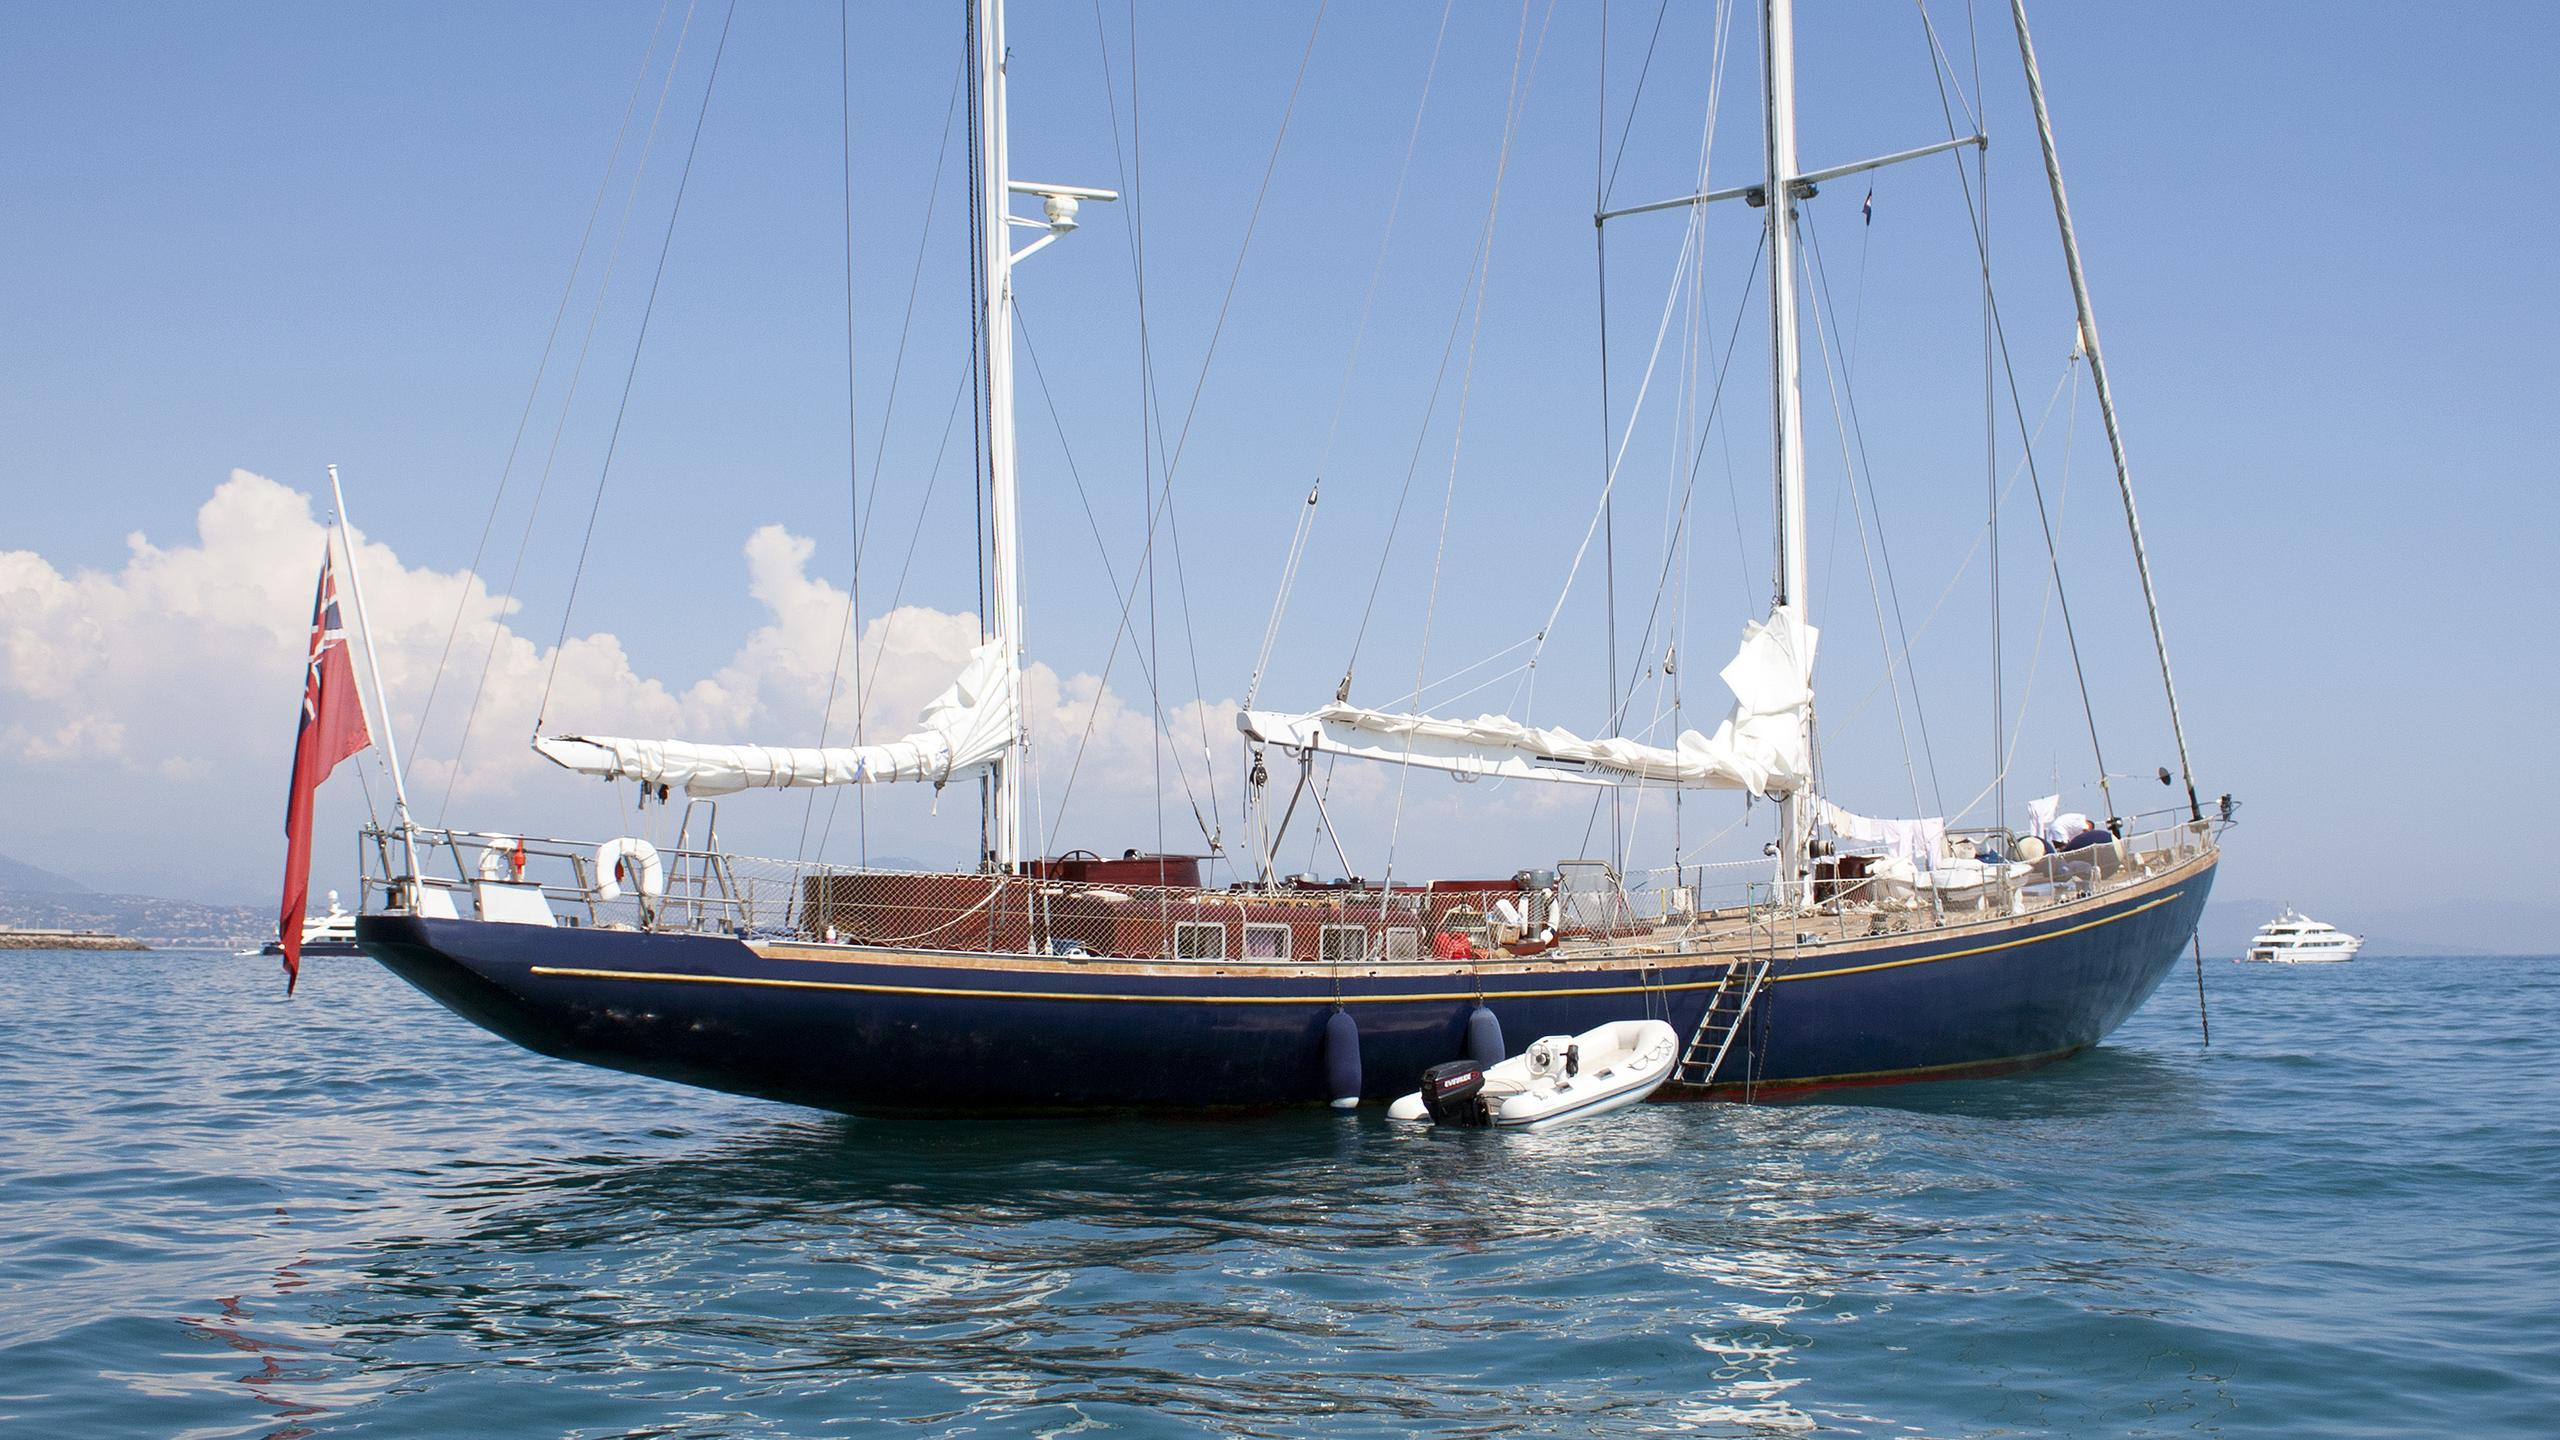 penelope-sailing-yacht-perriere-1968-39m-stern